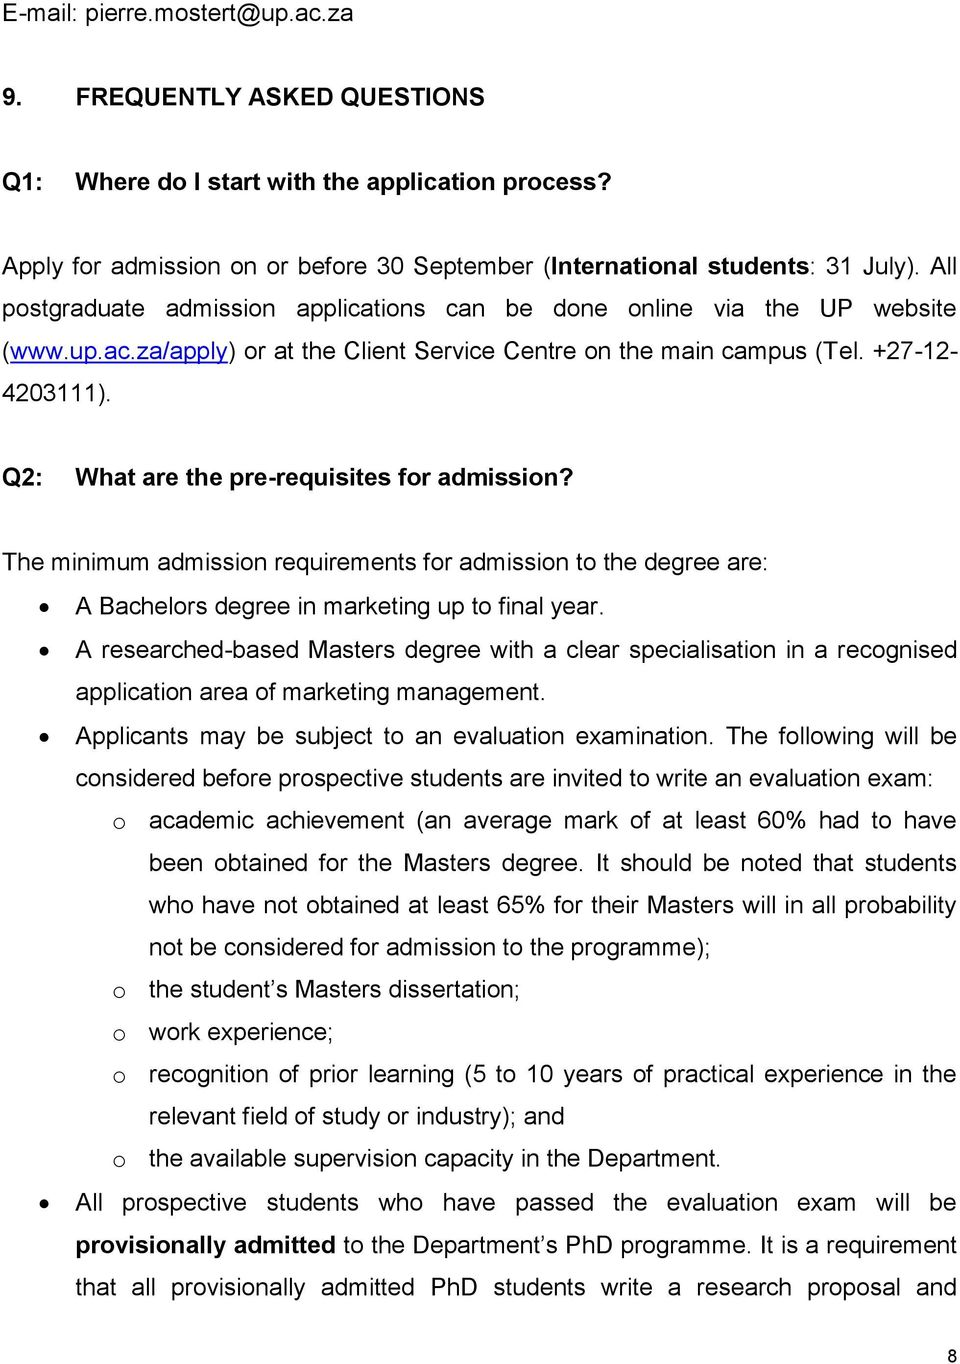 Free download phd thesis in marketing management how to write a biography grade 6